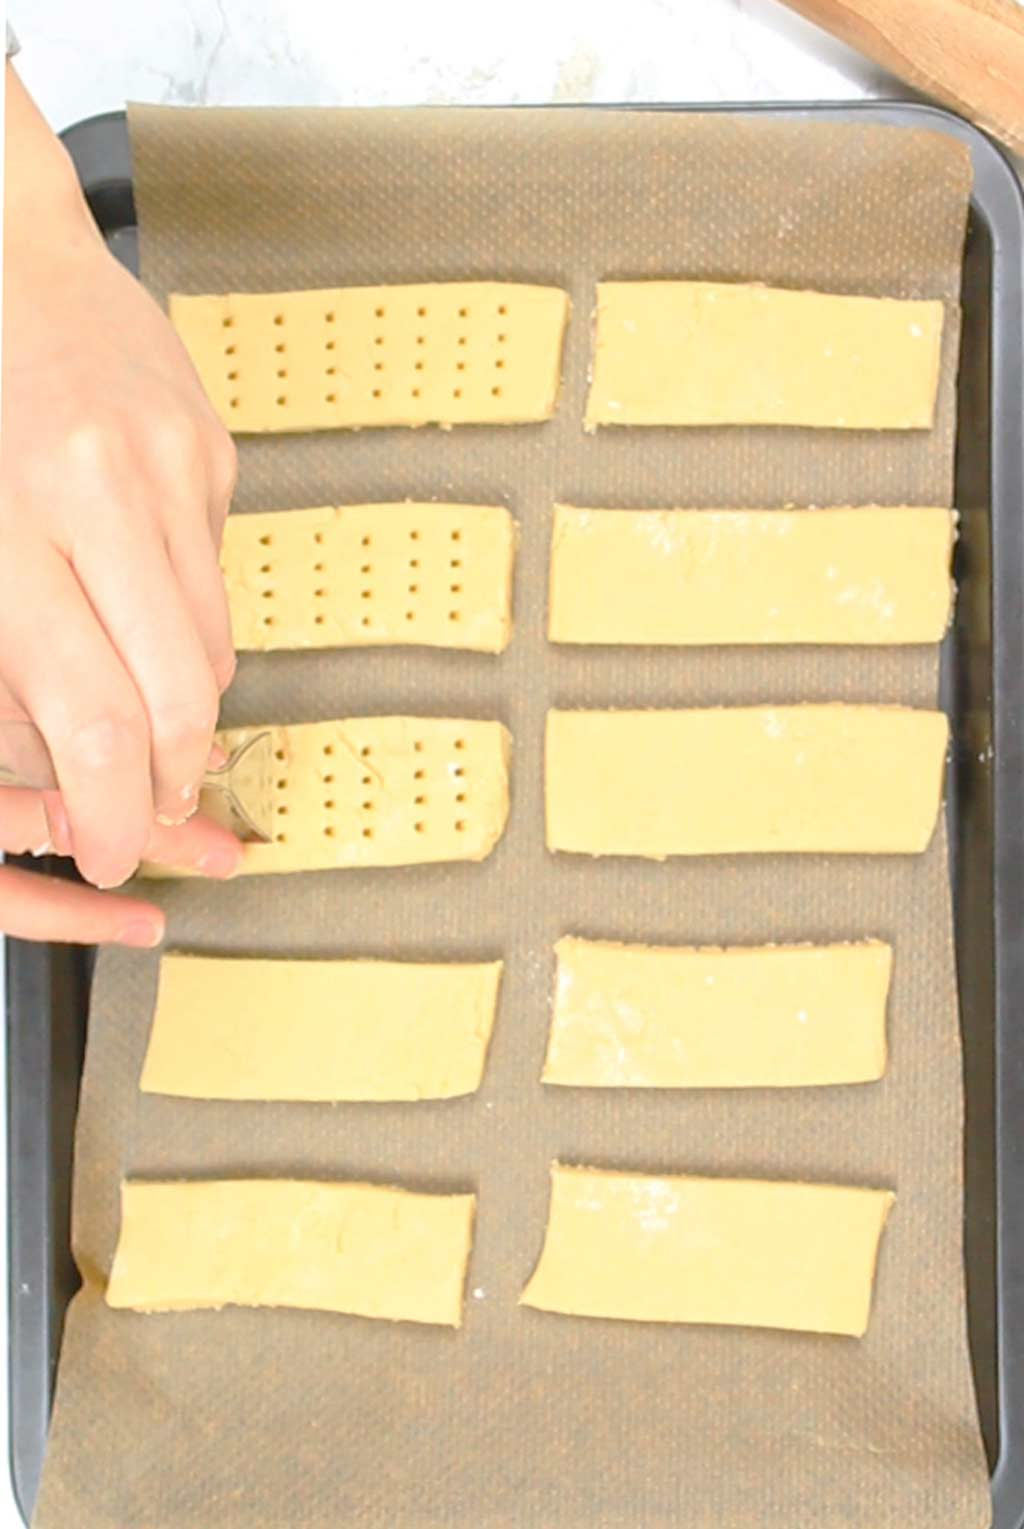 docking the shortbread fingers using a fork